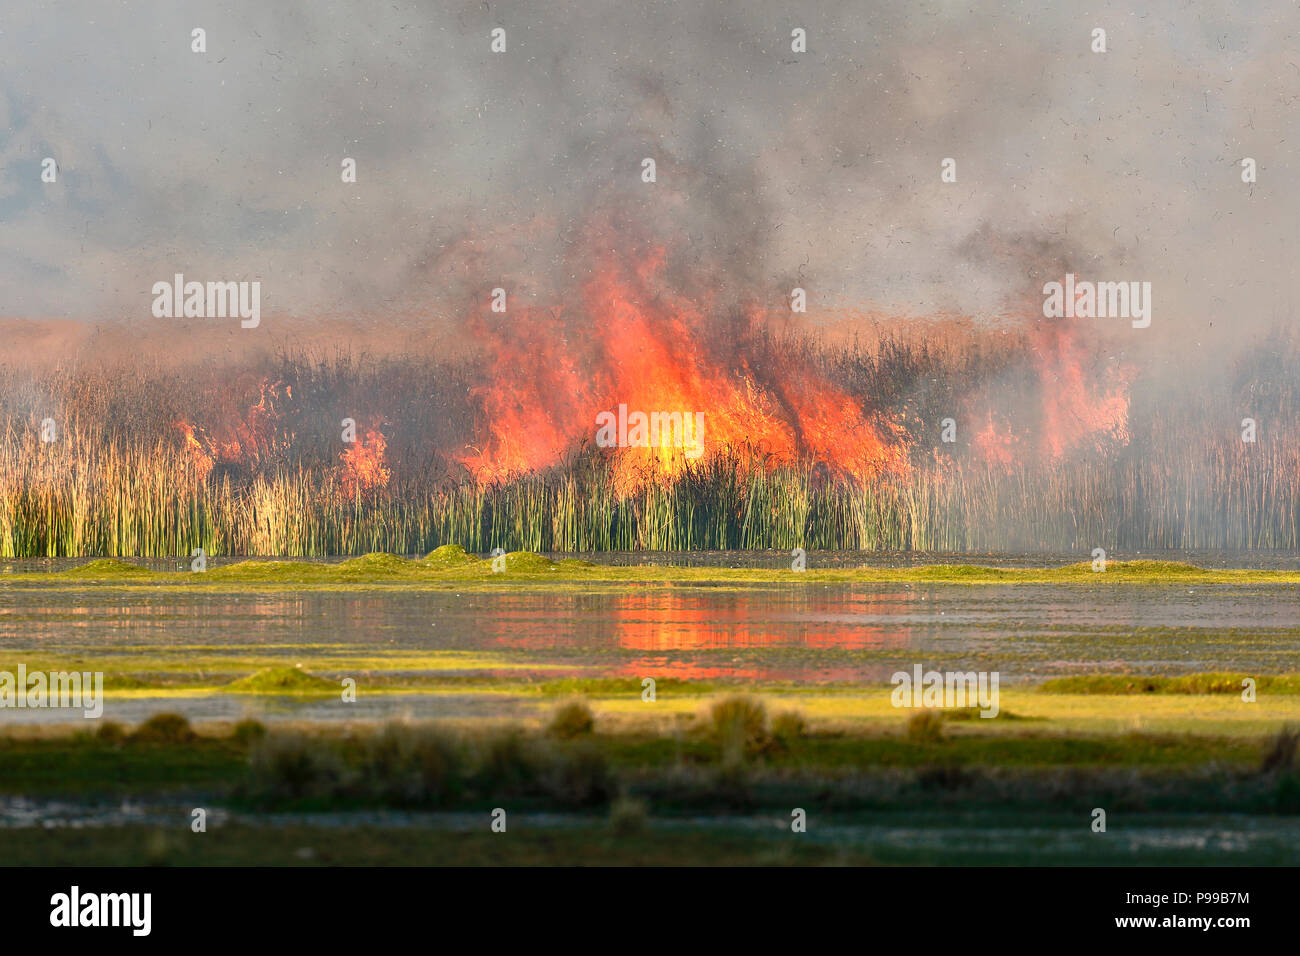 Detail of fire of reeds inside the lake Junín in Ondores - Stock Image